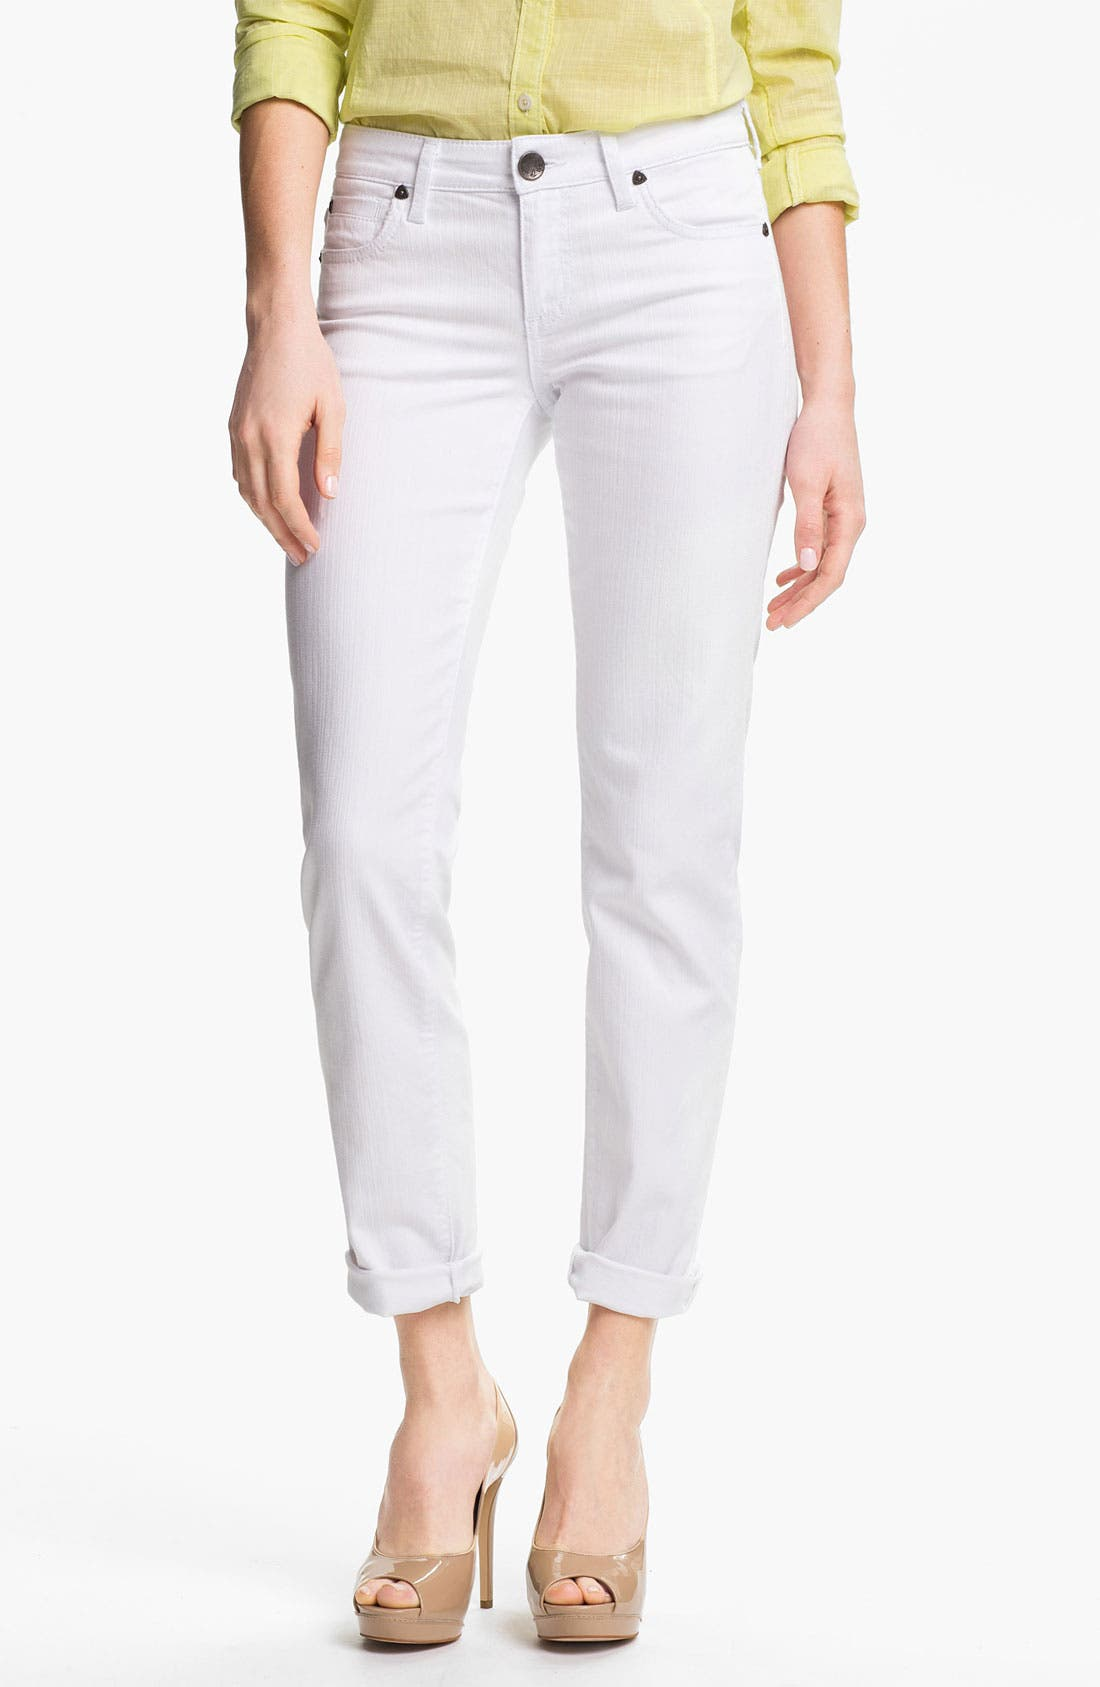 Alternate Image 1 Selected - KUT from the Kloth 'Catherine' Slim Boyfriend Jeans (White)